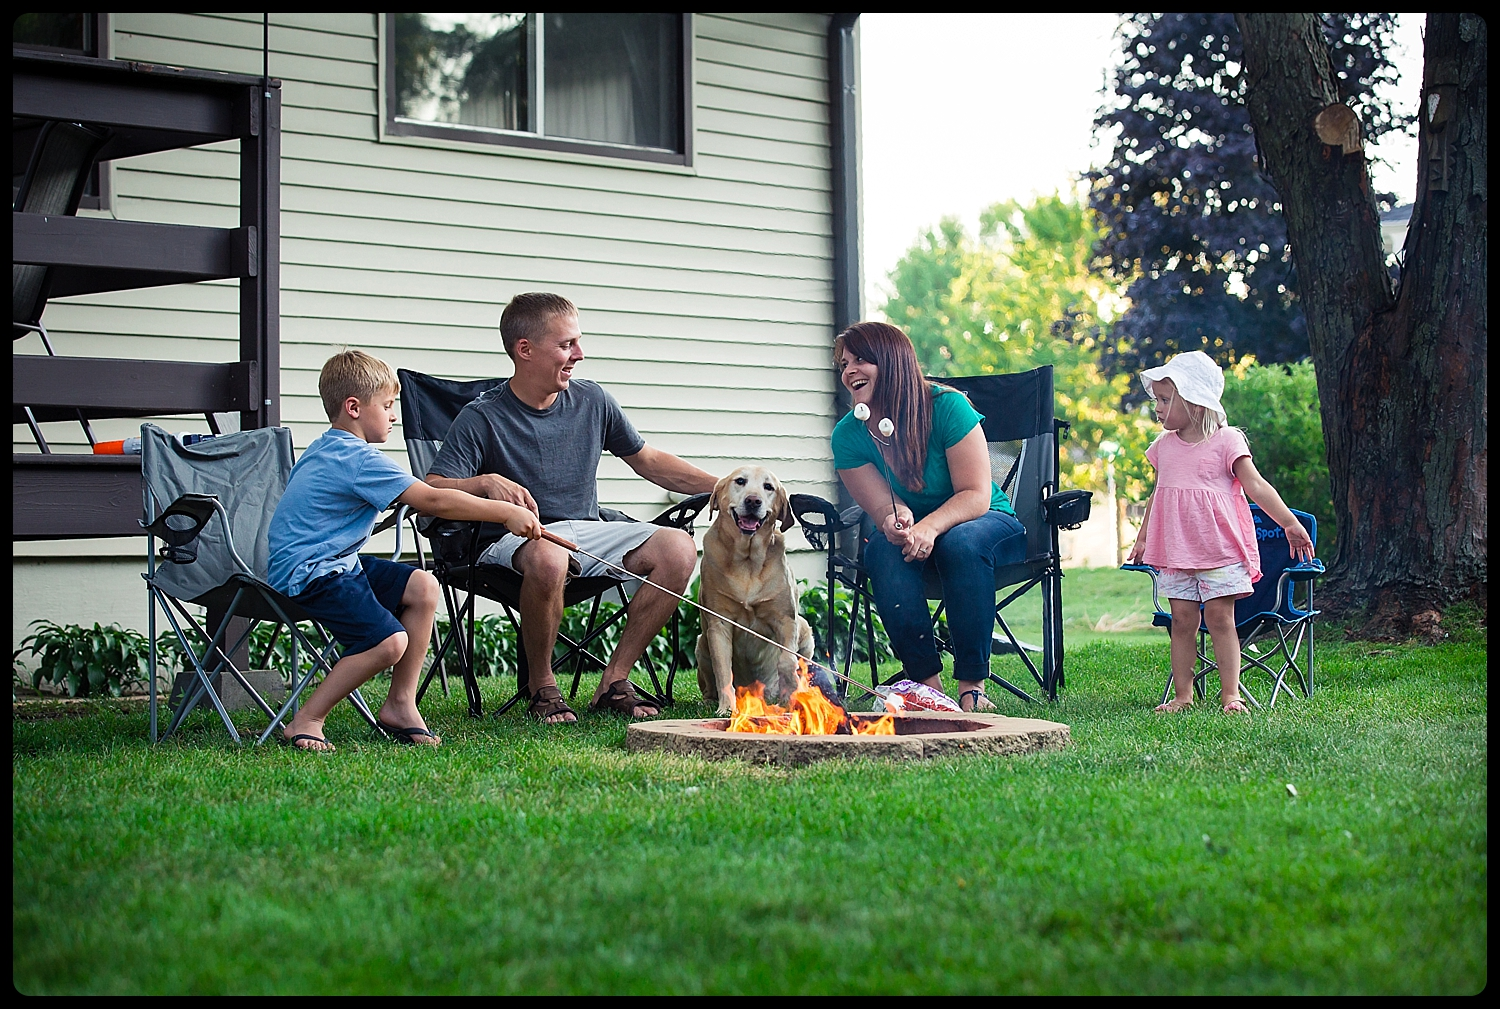 Family has campfire as dog smiles at camera.